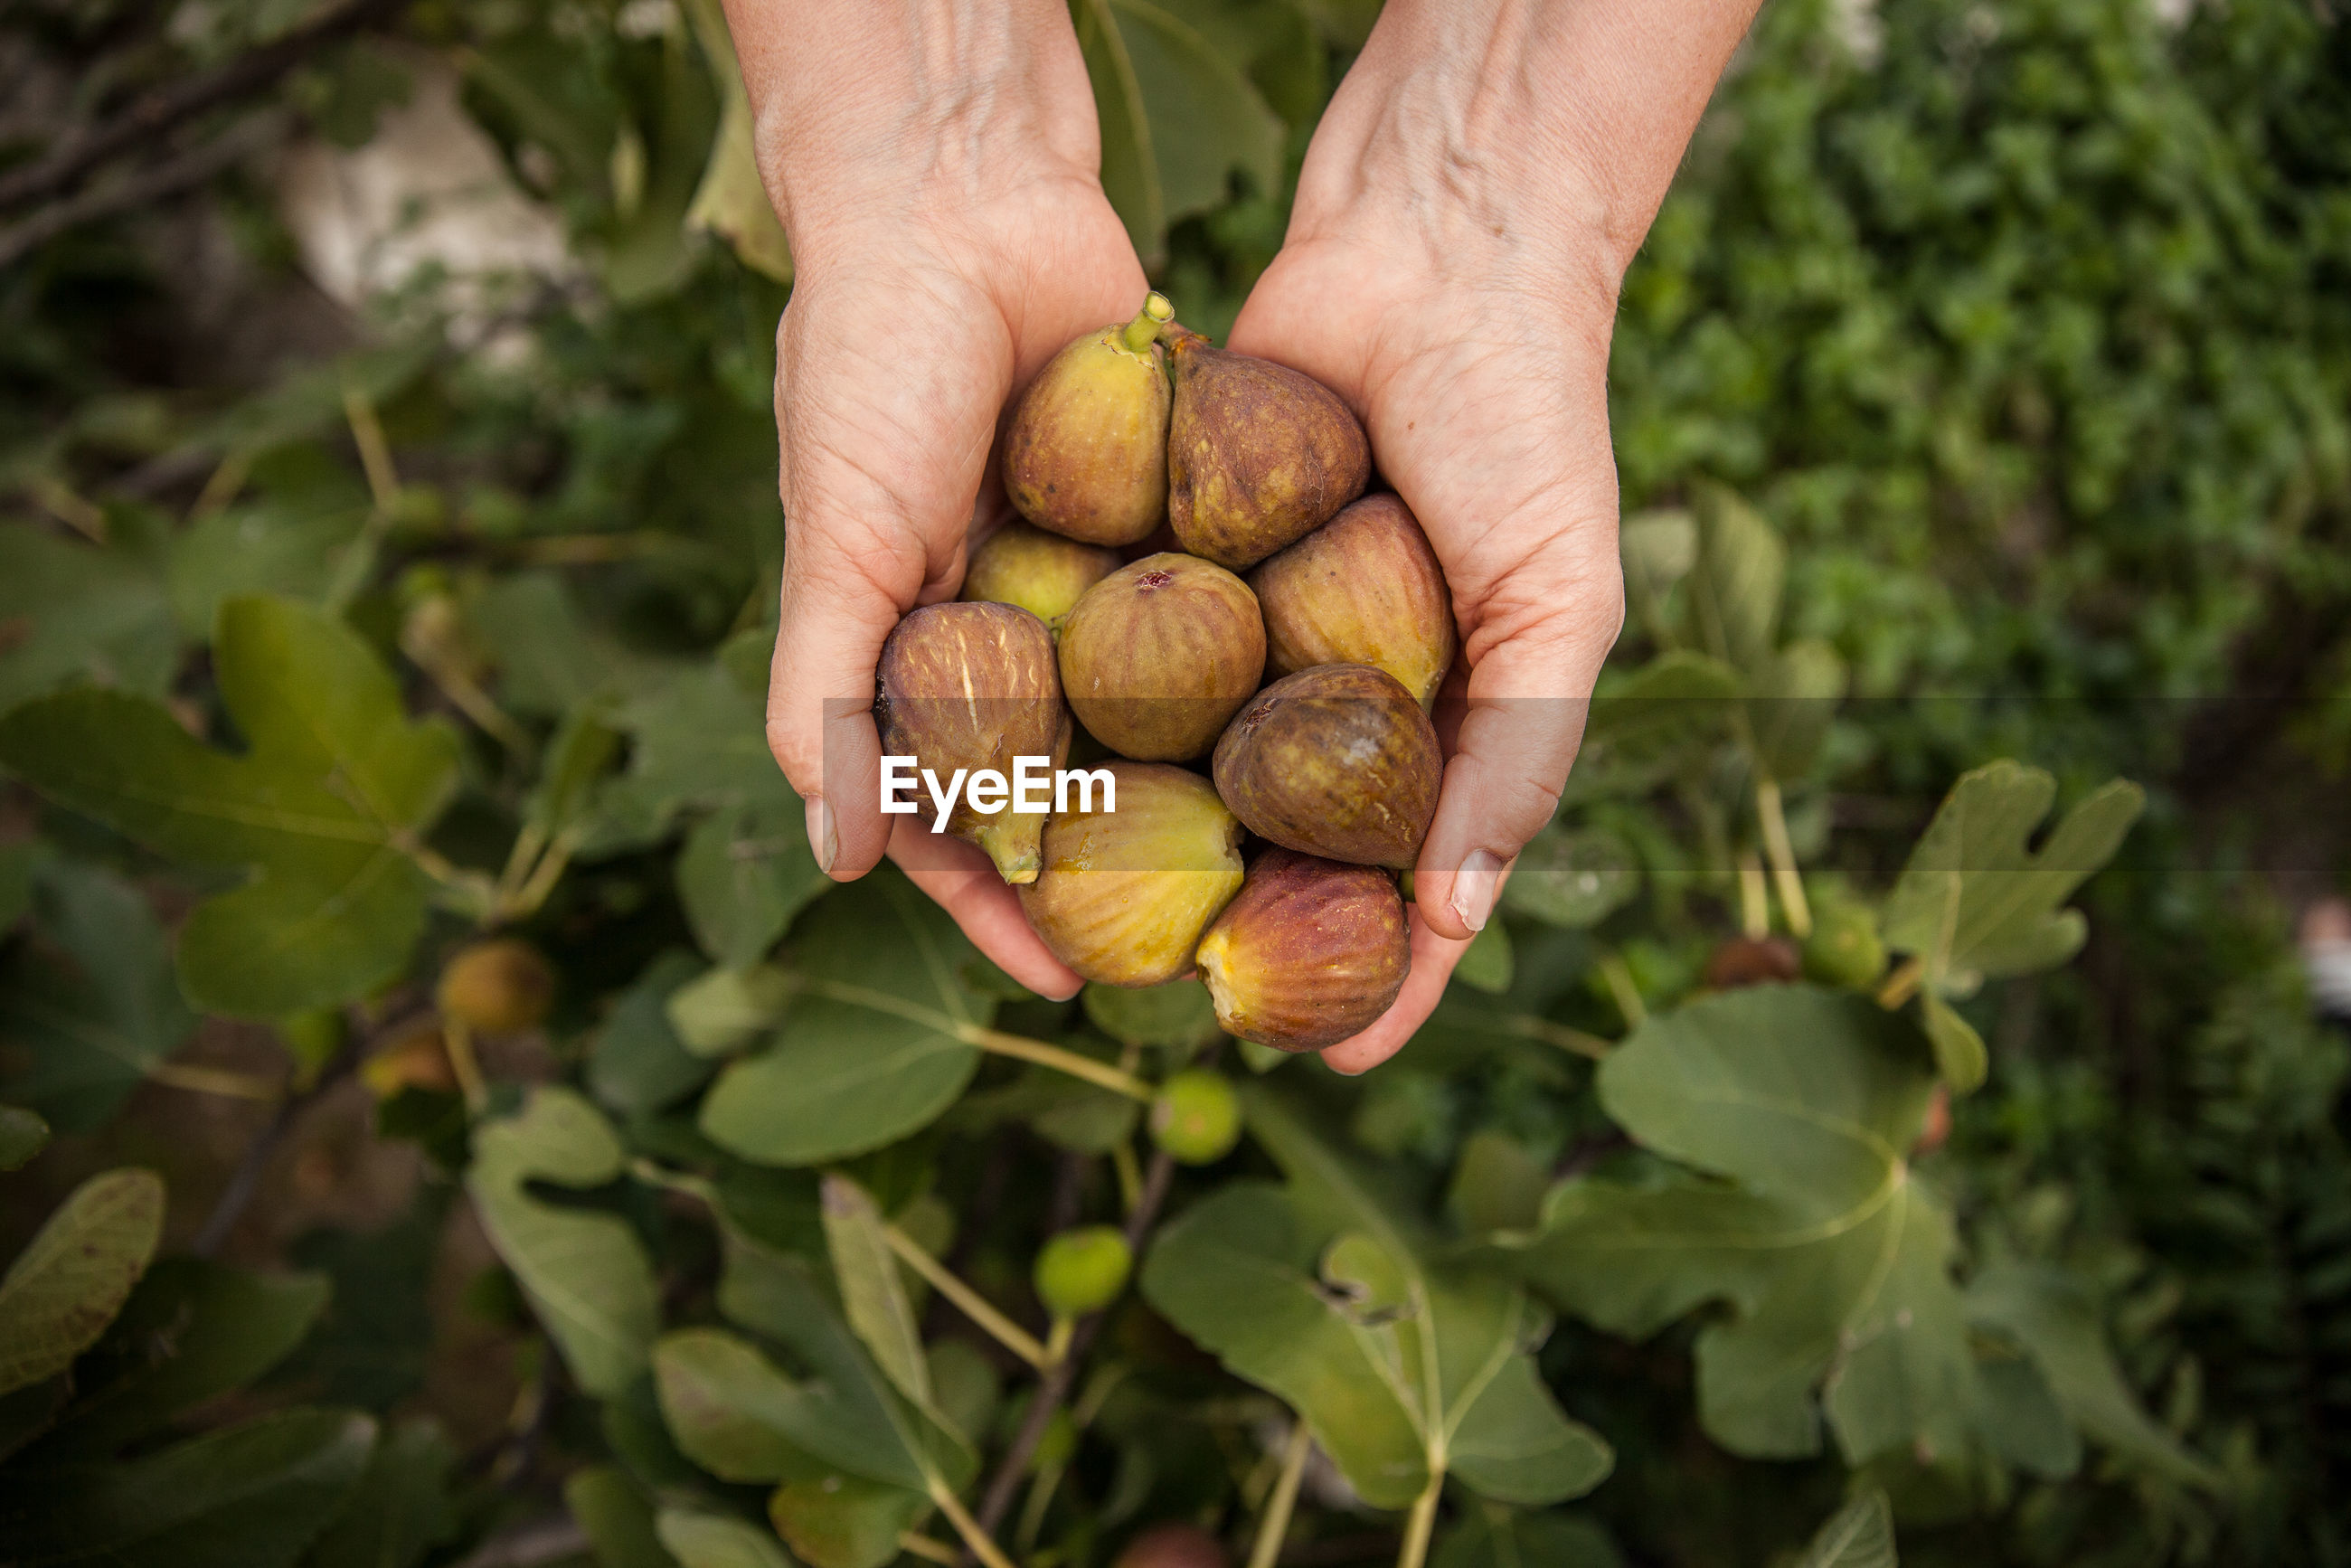 Close-up of hands holding figs